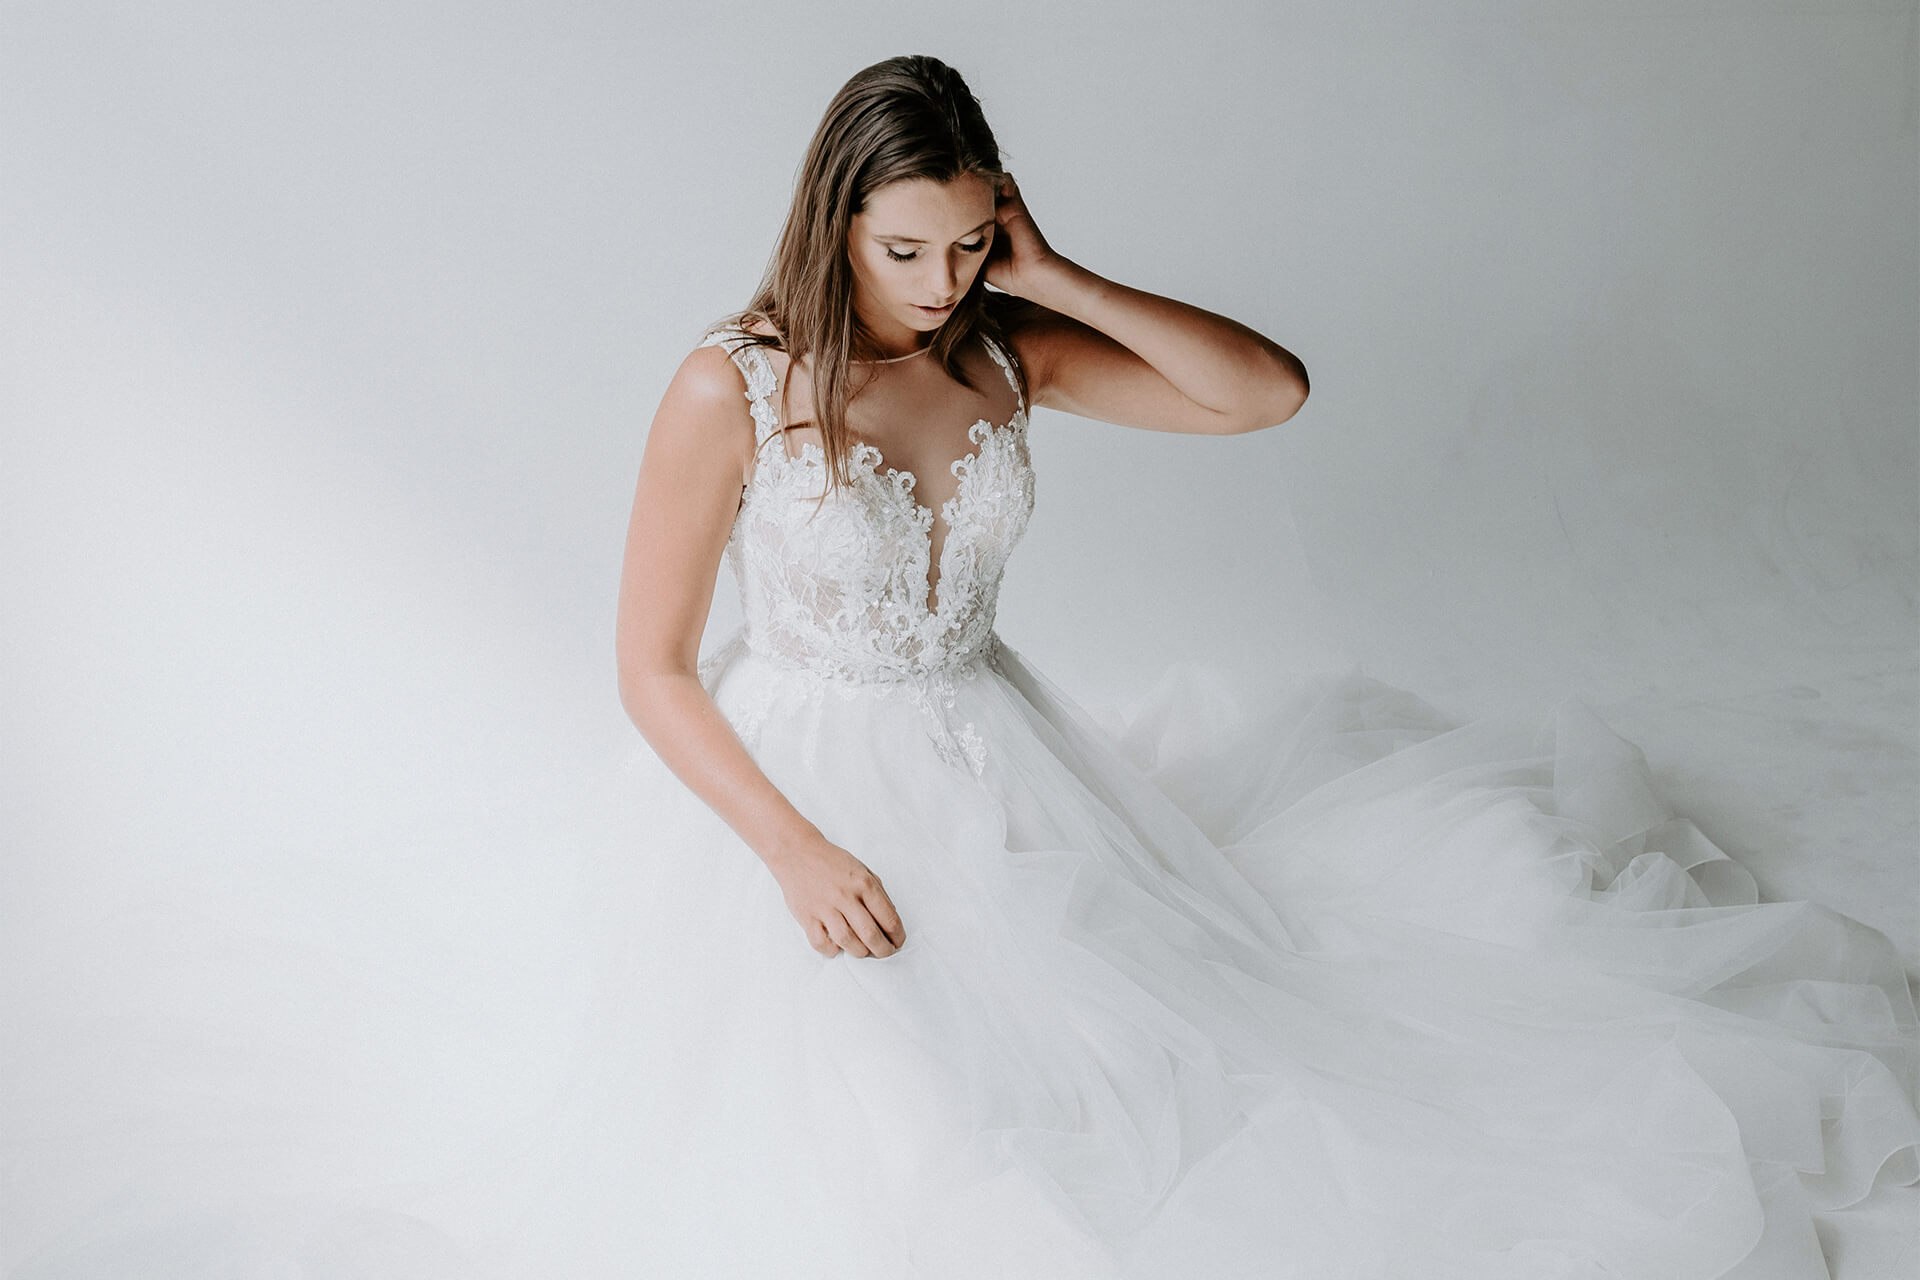 Model in a wedding dress looking down at her dress